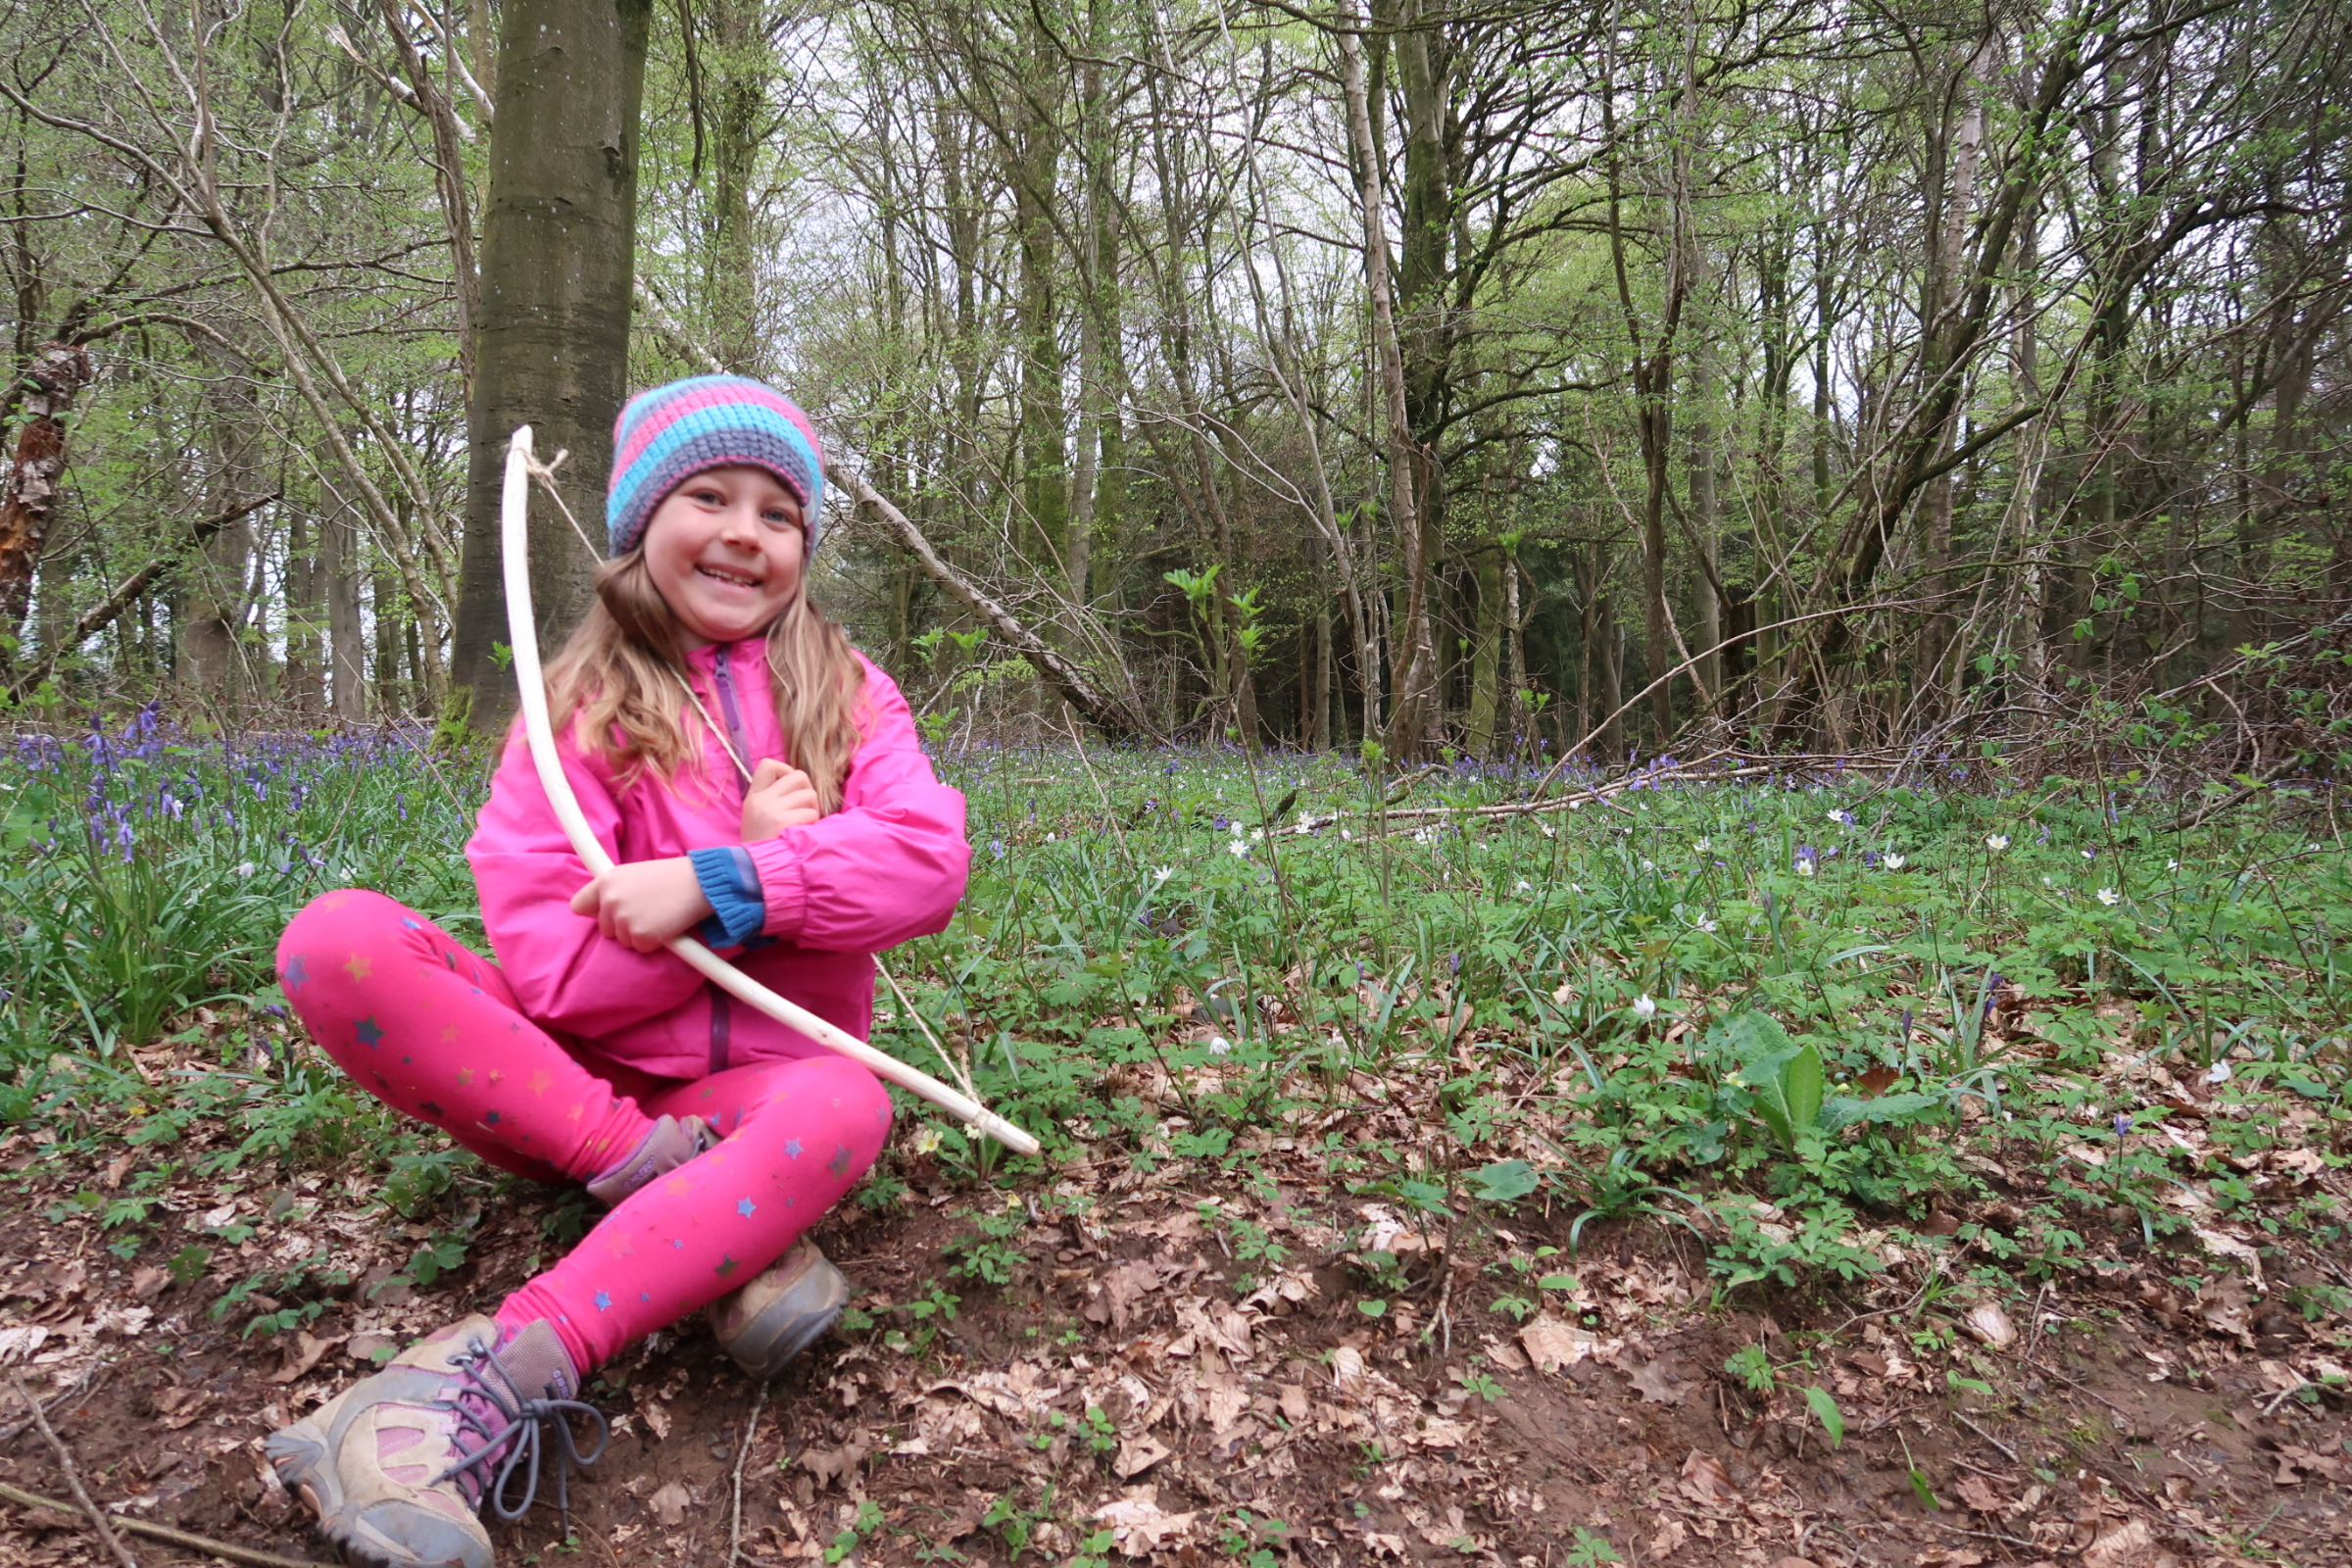 My daughter sitting down in a wood, behind her is a beautiful carpet of bluebells and white flowers. She is beaming as she holds a bow that she made herself from a stick and some twine. She is wearing pink leggings, a pink coat, walking boots and a woolly beanie hat.